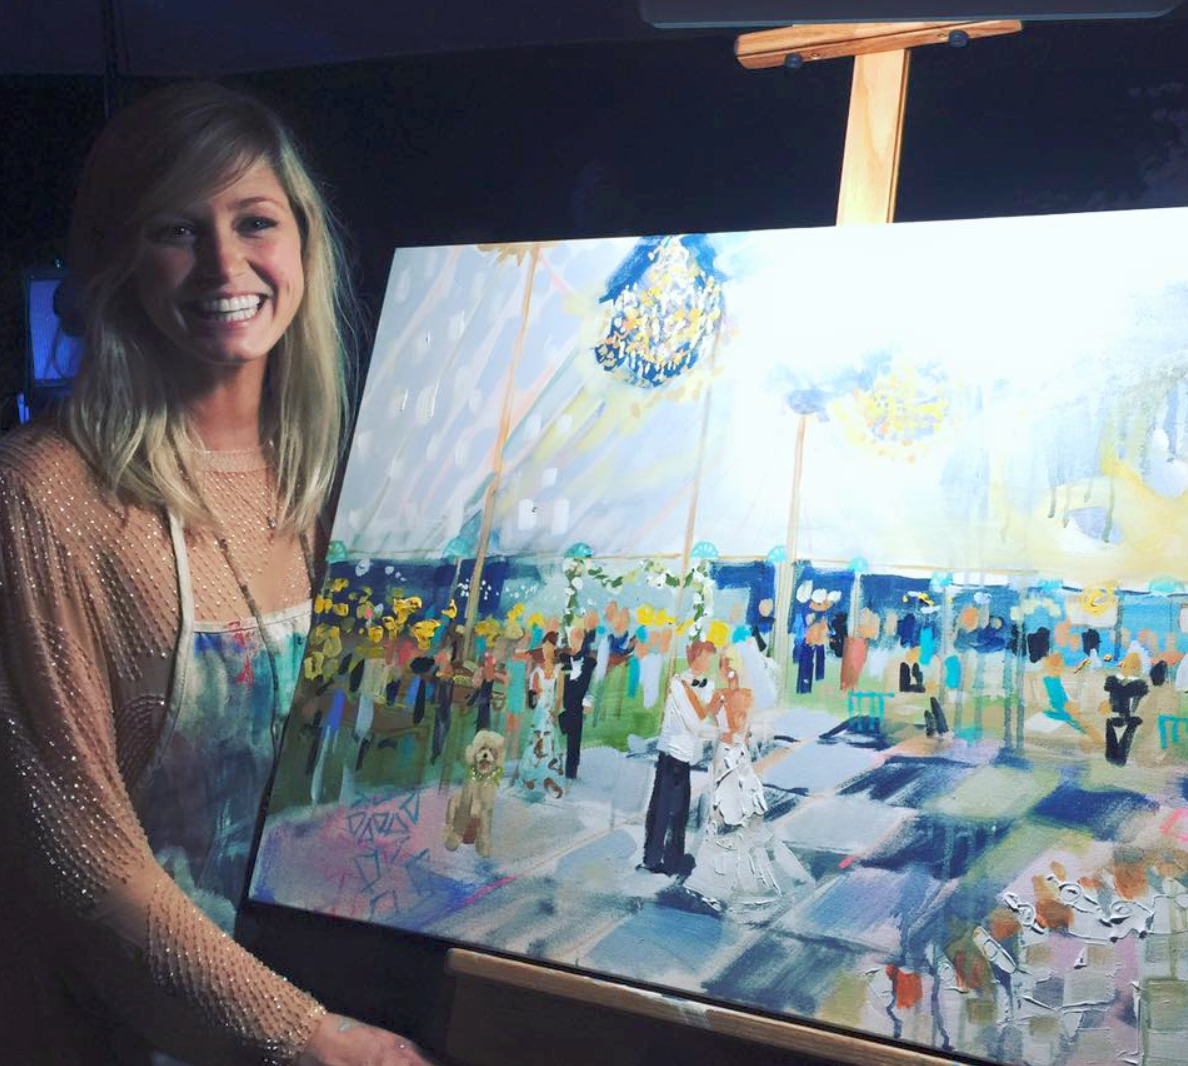 Here Elaine is doing a live event painting at a wedding. What a fabulous idea.